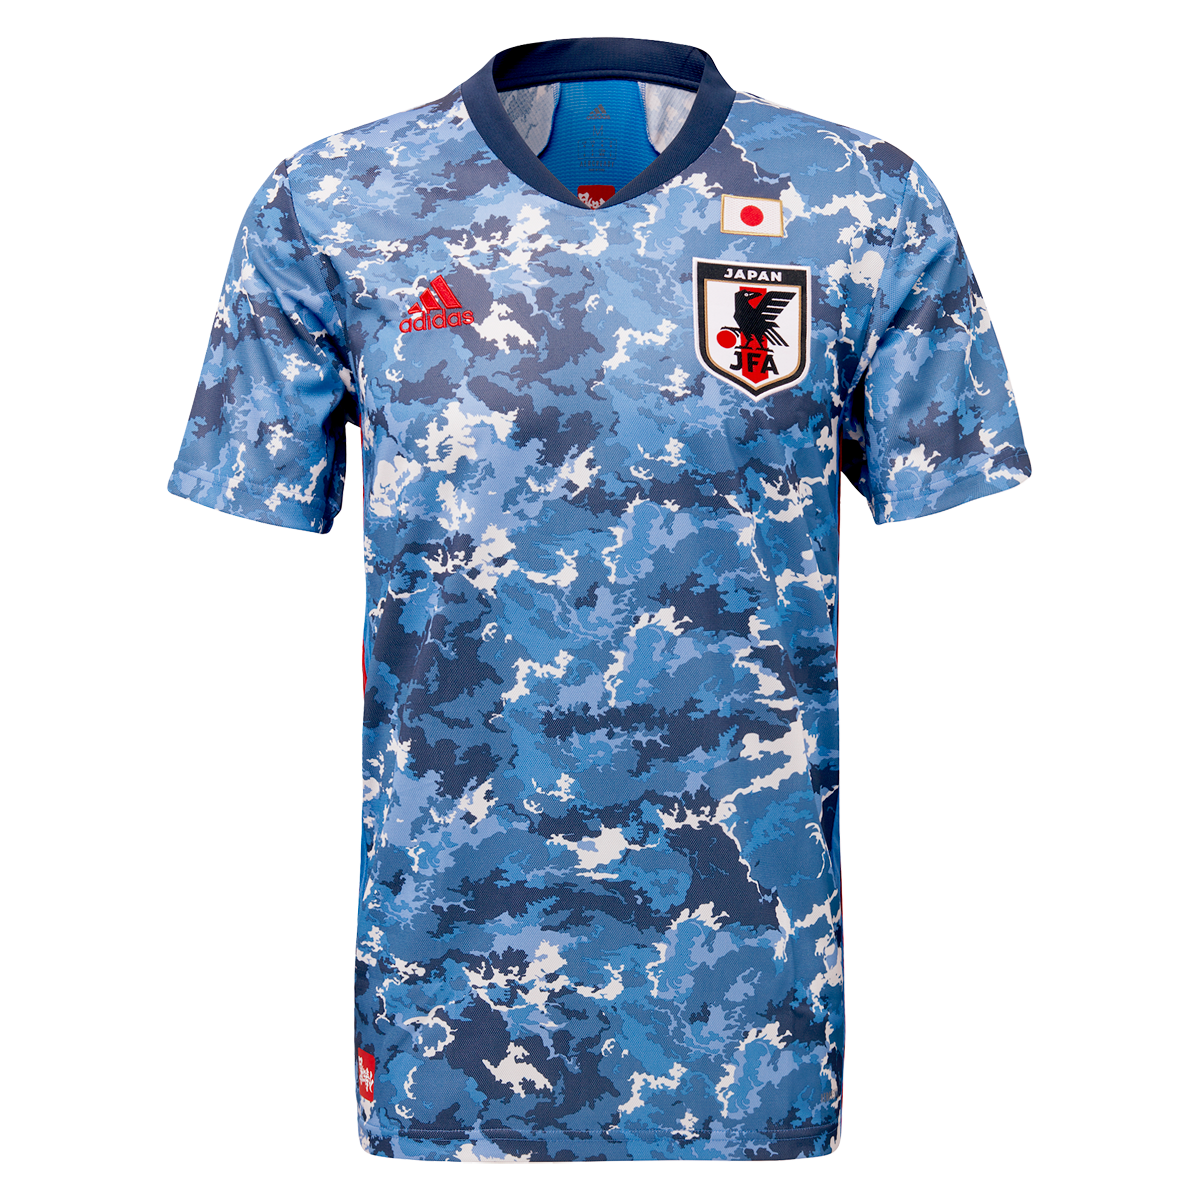 Adidas Japan Home Jersey 2020 L World Soccer Shop Soccer Shop Japan